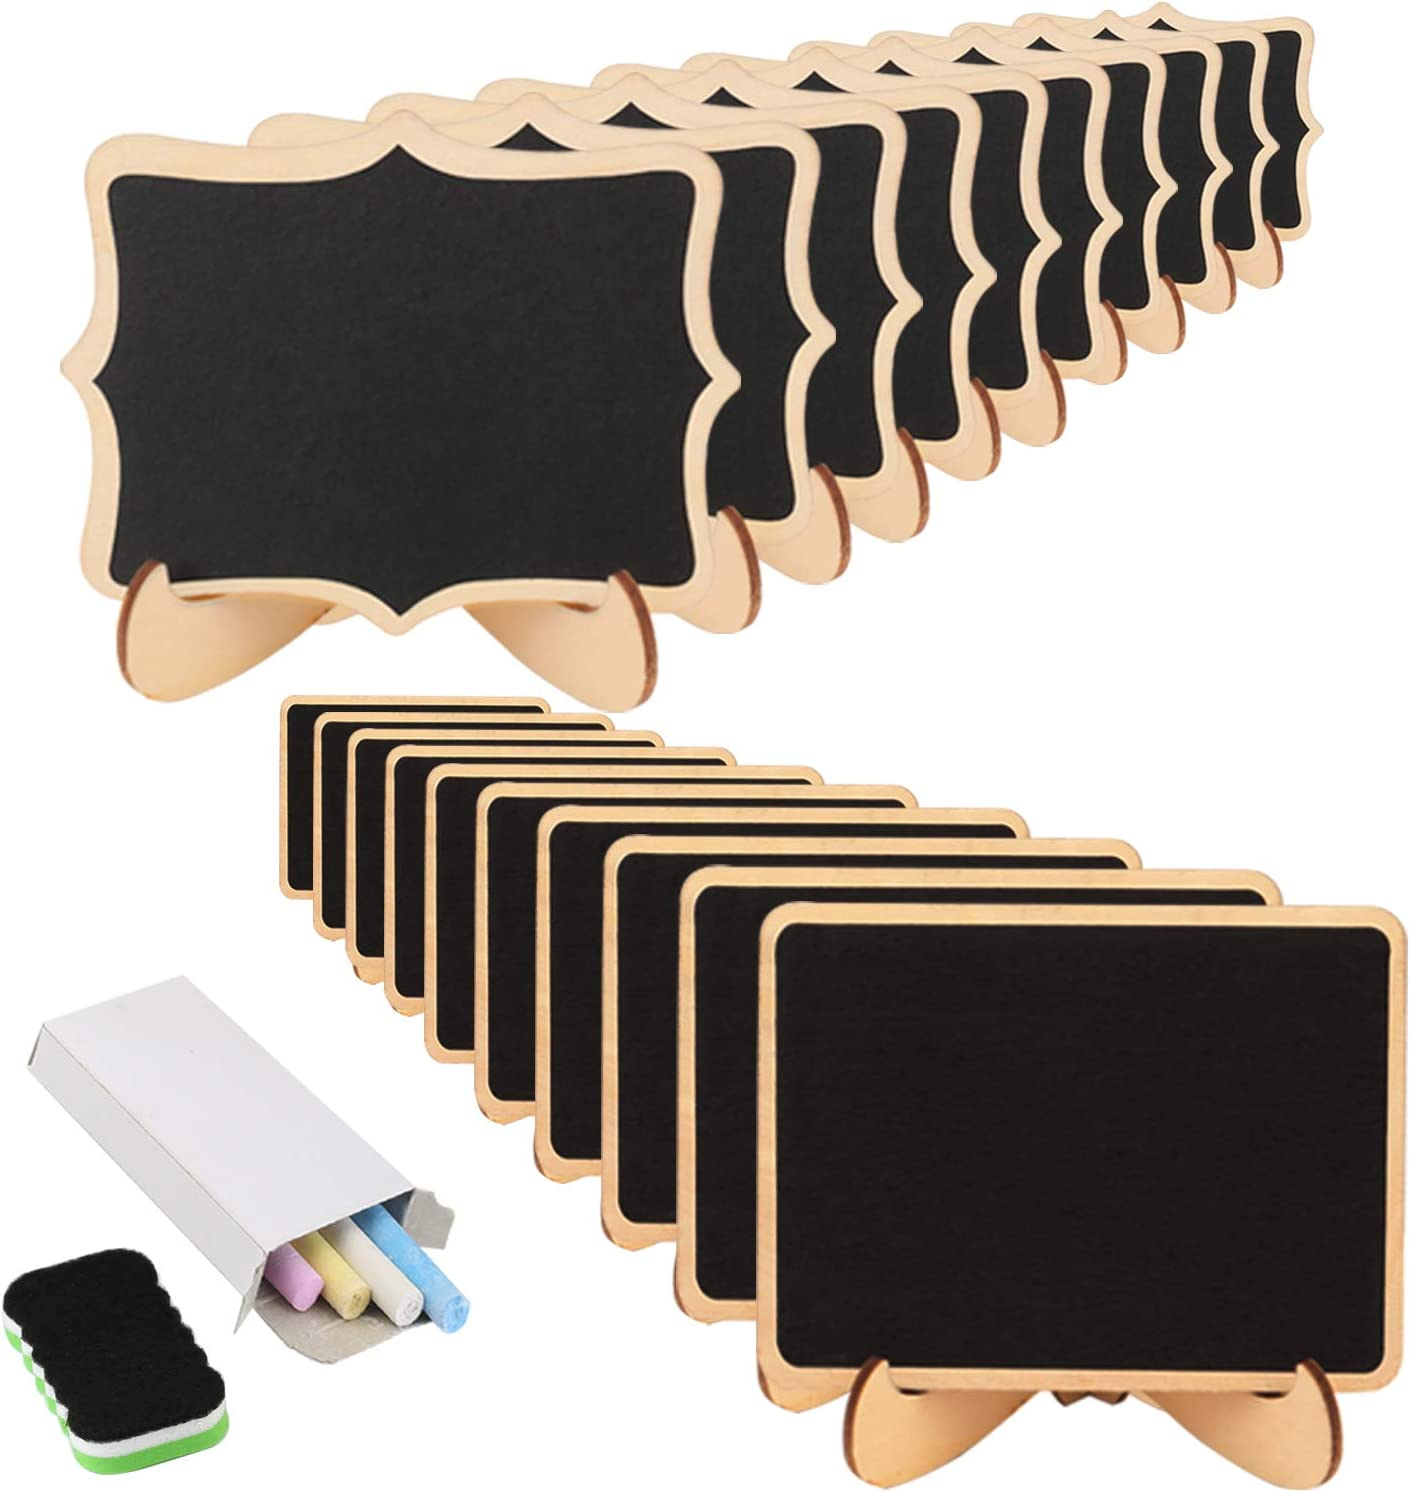 Mini Chalkboard KAKOO 20 Pcs Blackboard with Stand for Party Wedding Table Number Message Board Signs. (20 pcs Mini chalkboards)